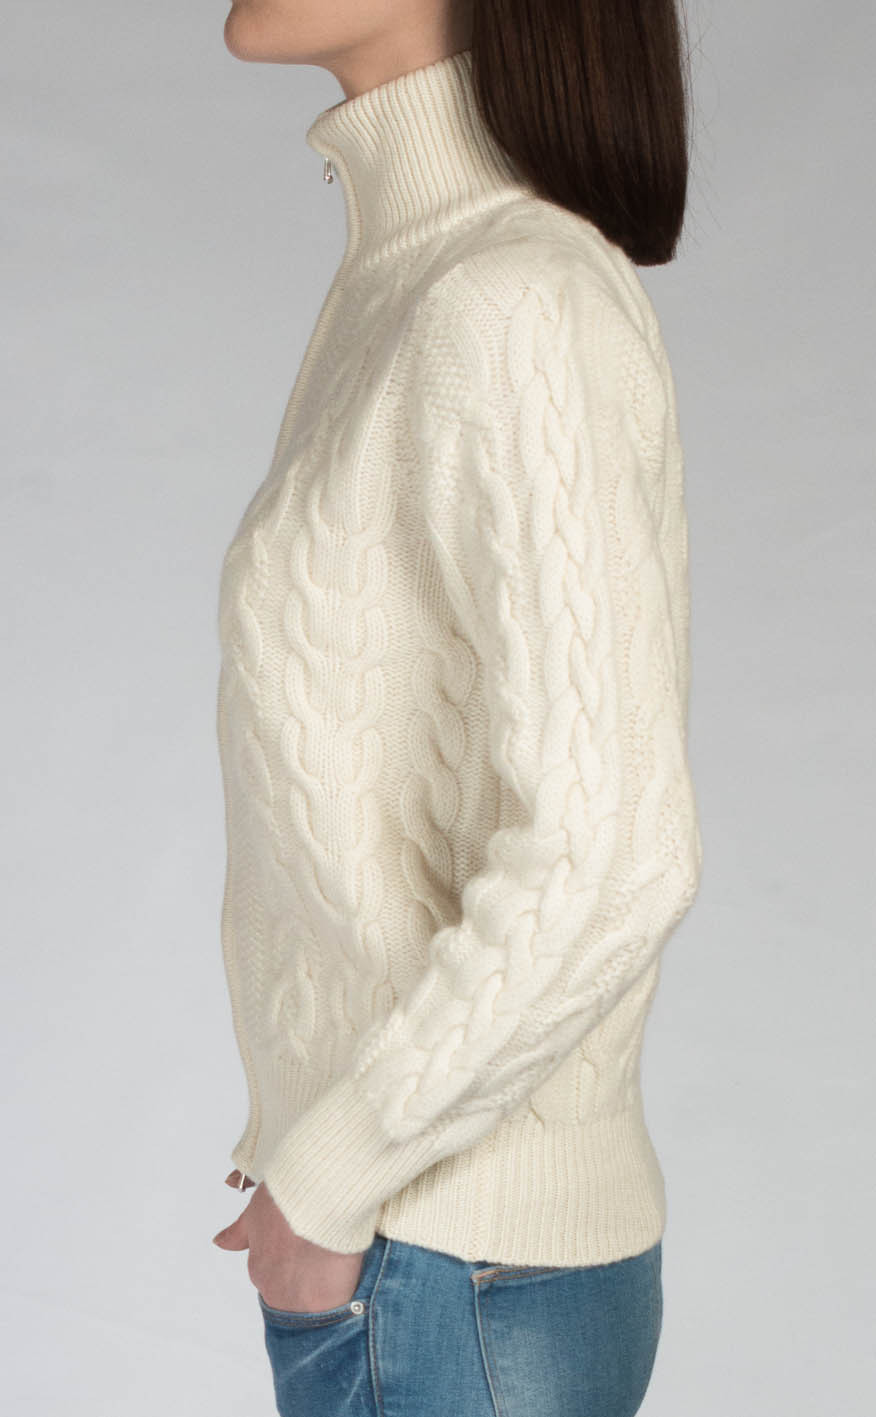 Colour: White Undyed